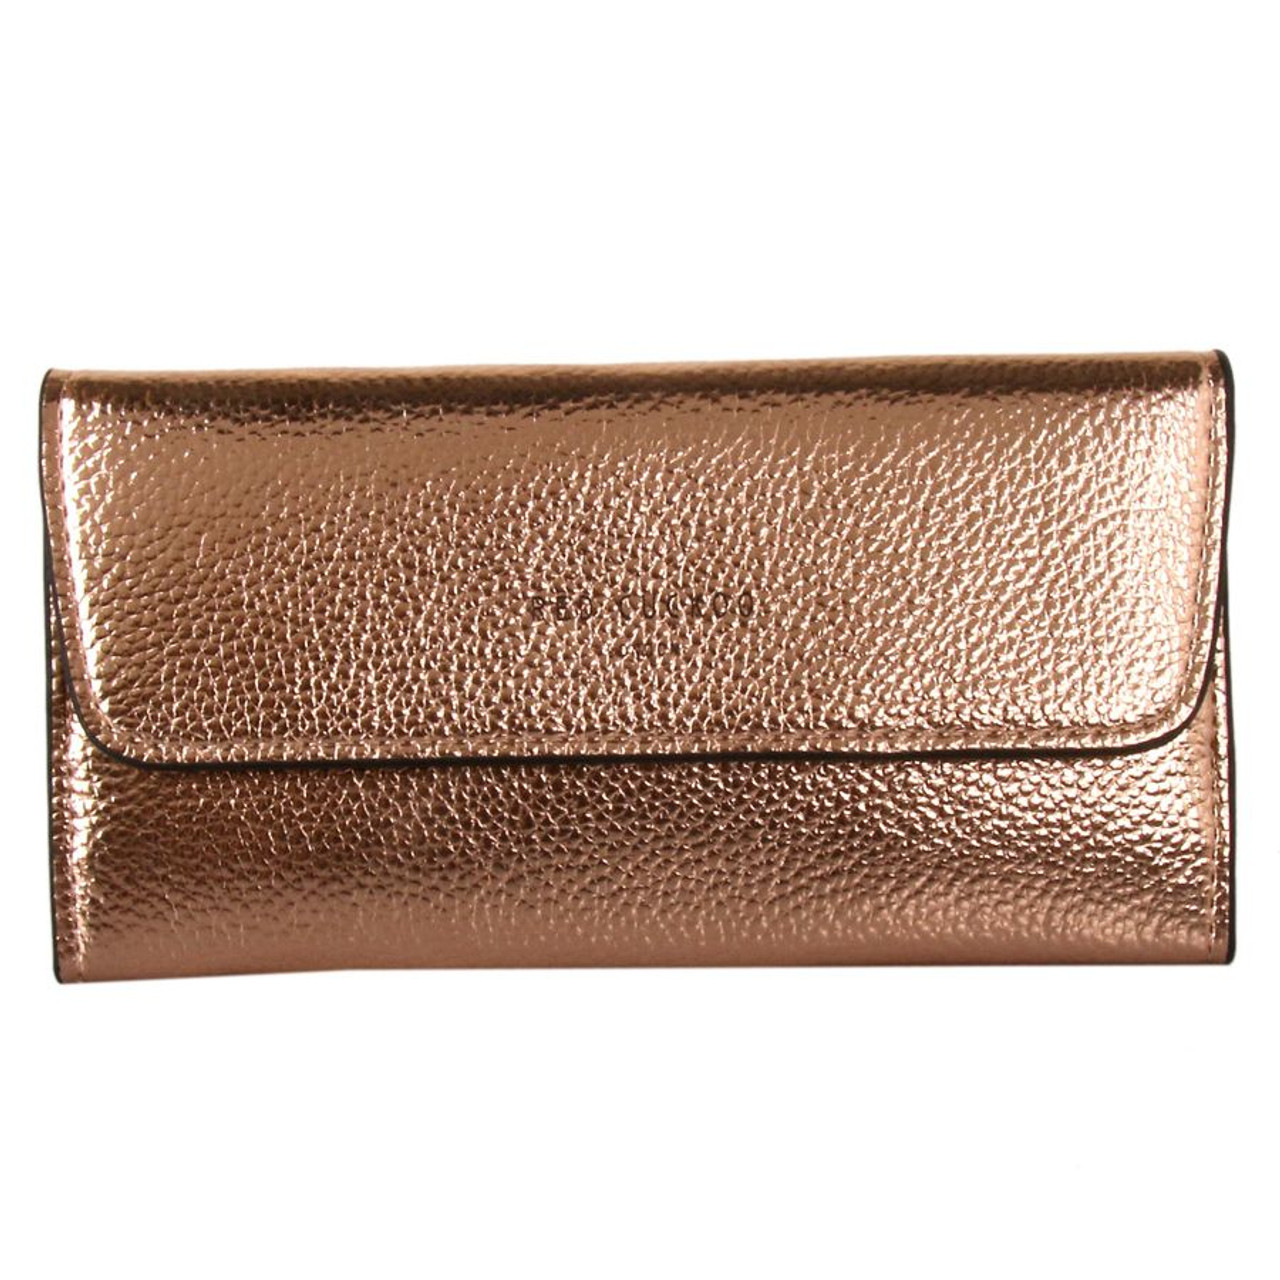 686962049b2 Red Cuckoo Rose Gold Metallic Fold Over Purse - Itsy Bitsy Boutique